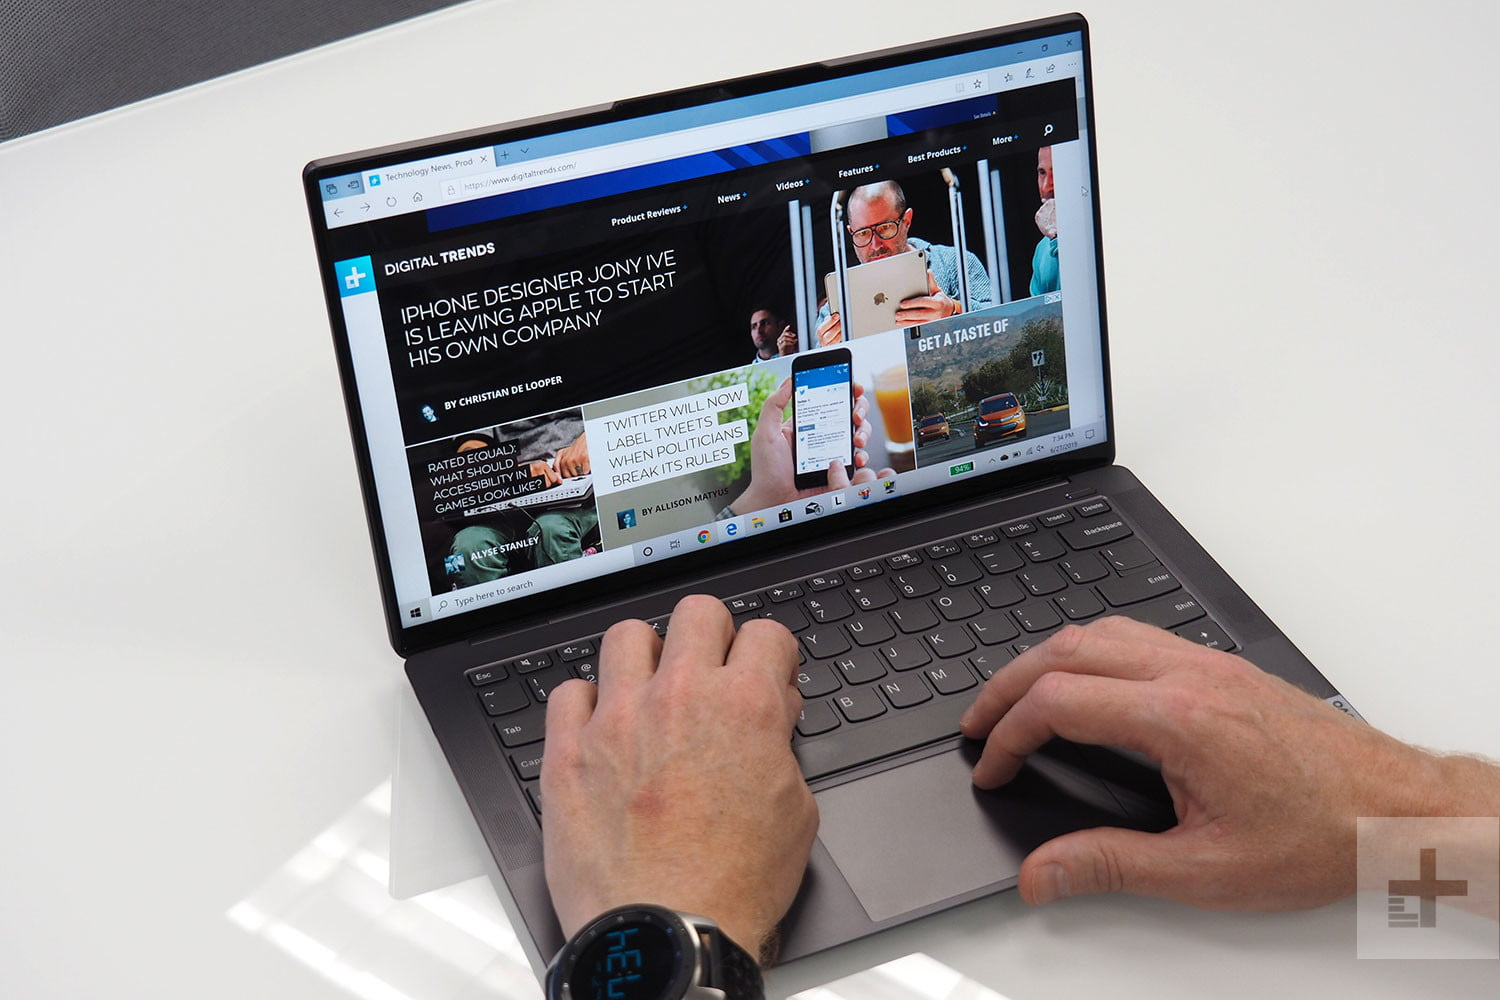 Lenovo IdeaPad S940 Review: Tiny Bezels and Lovely Display ...